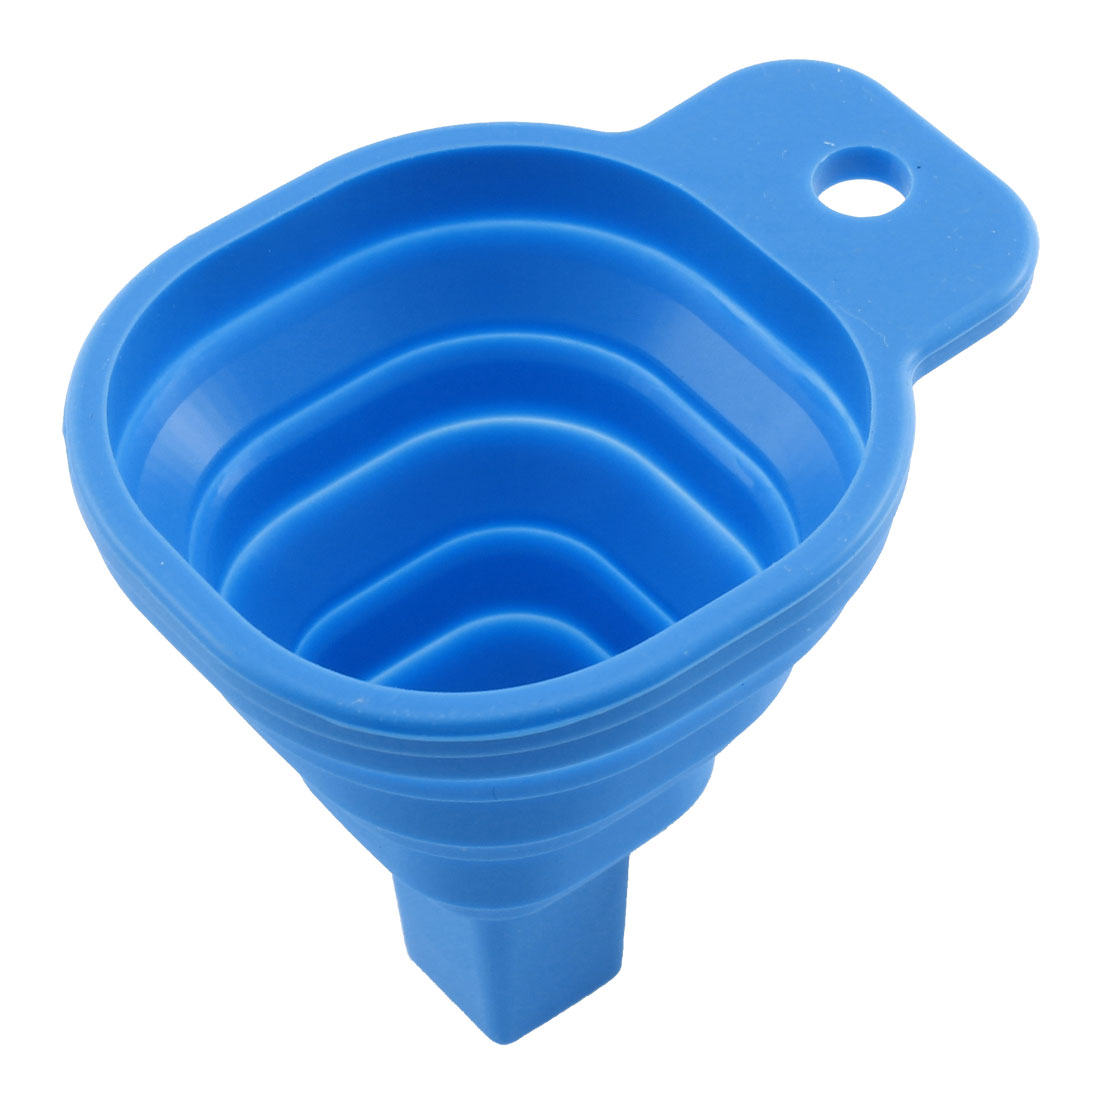 Home Kitchen Tool Practical Foldable Gadget Silicone Funnel Hopper Blue